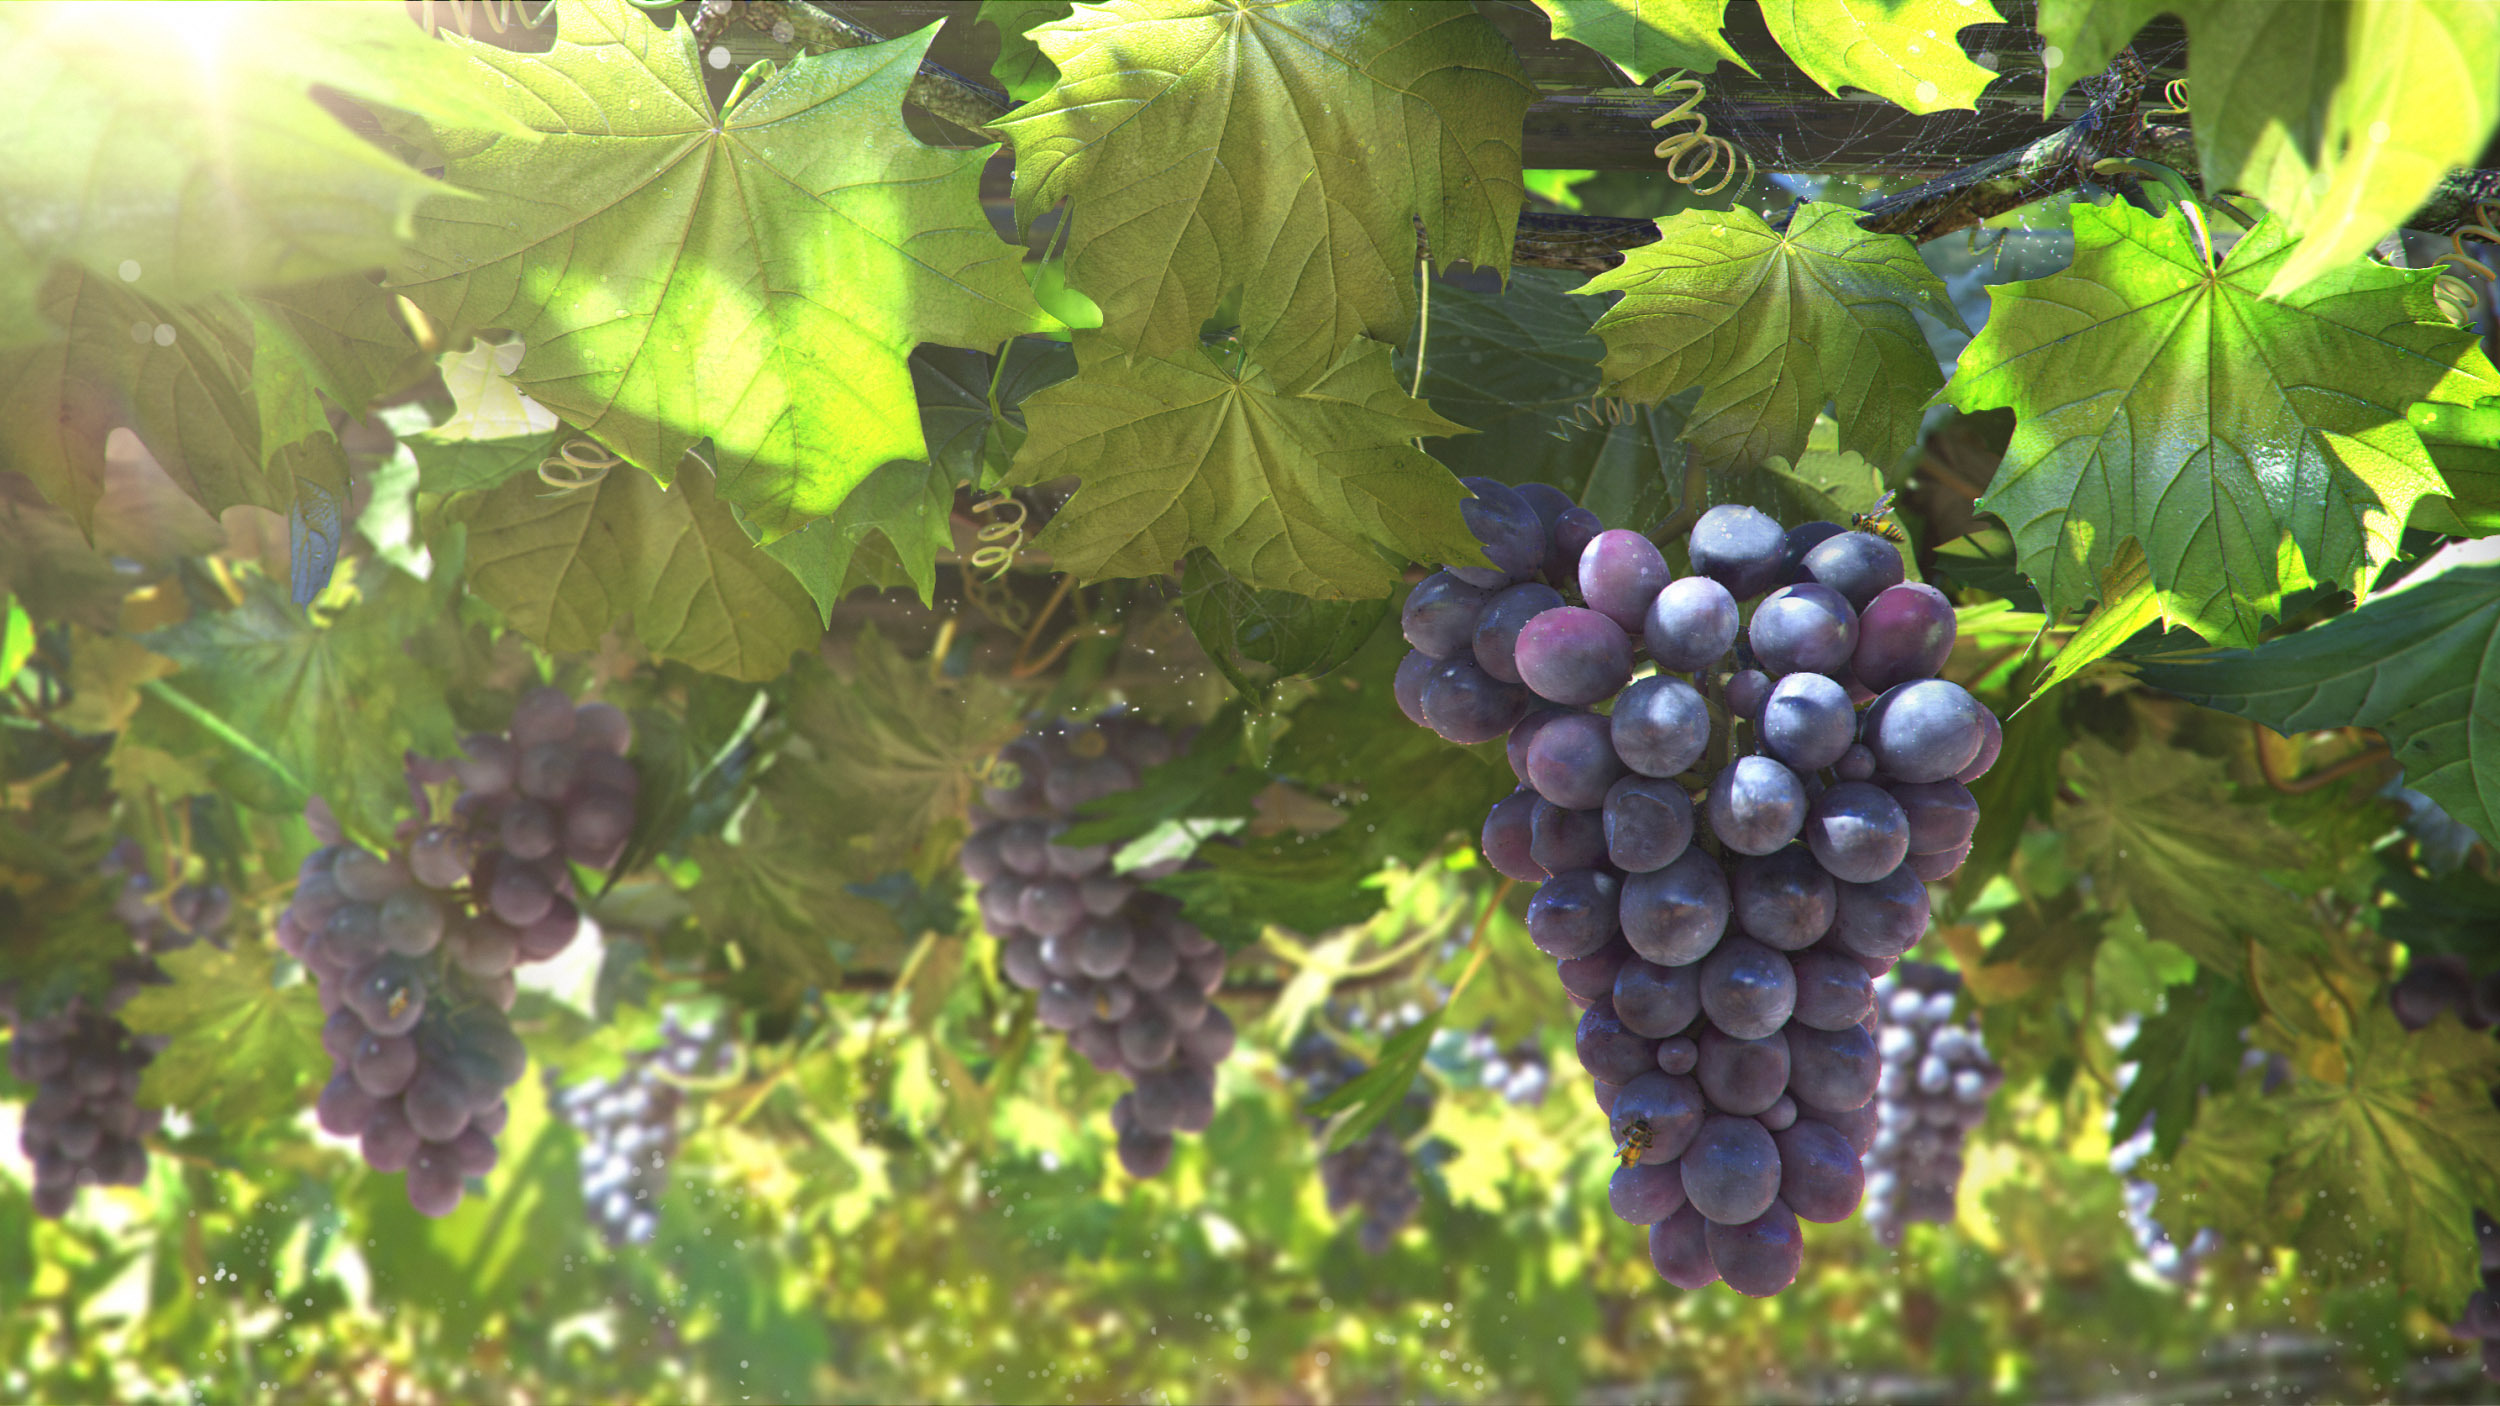 Grapes Full HD Wallpaper and Background Image | 2500x1406 ...